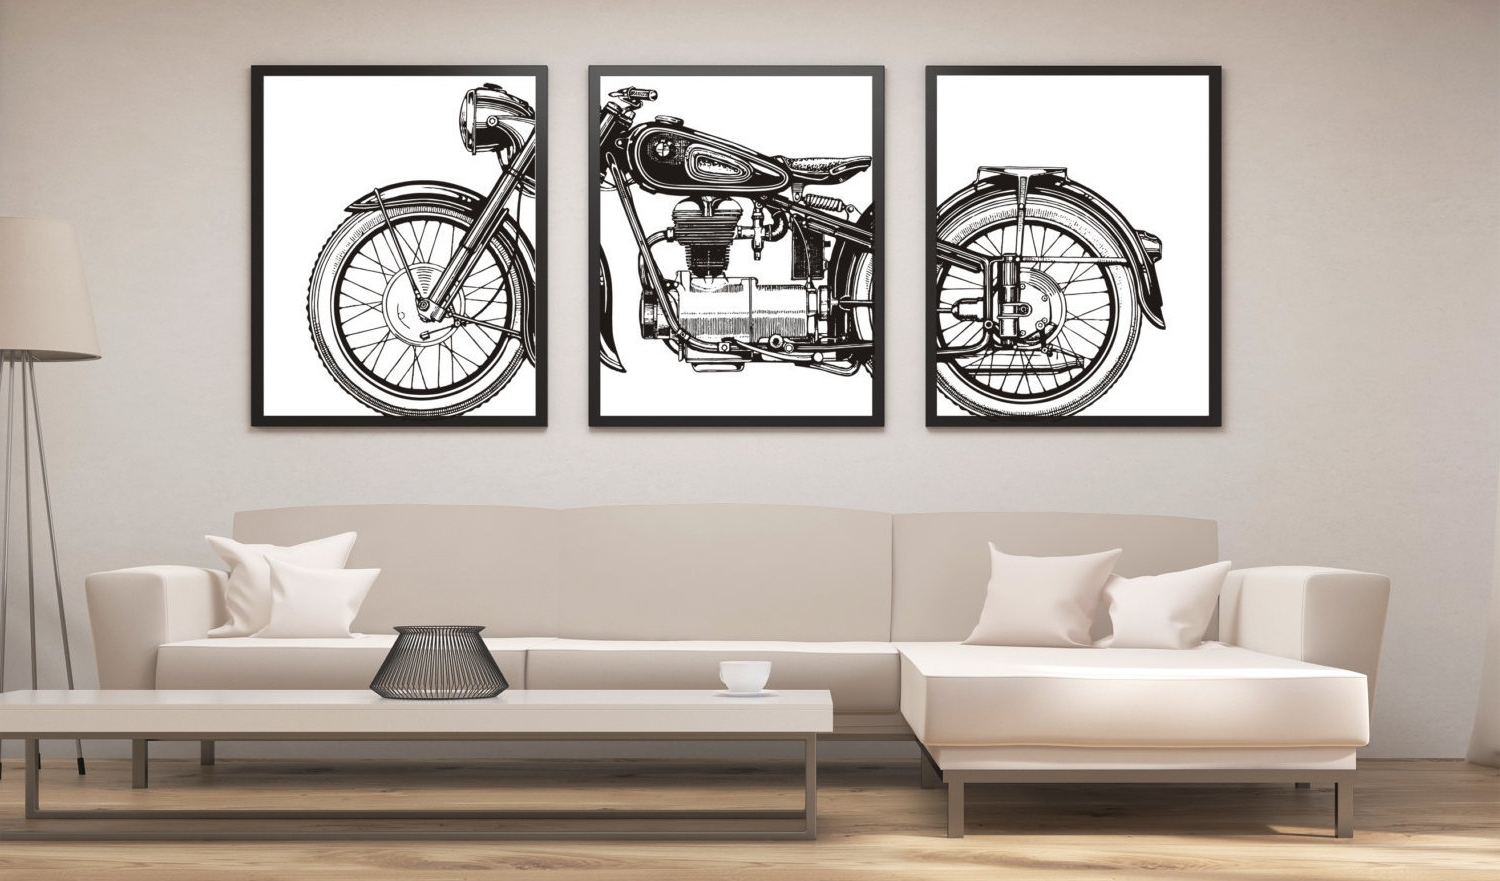 2017 Motorcycle Wall Art Print : Andrews Living Arts – Perfect Ideas Throughout Motorcycle Wall Art (View 10 of 15)